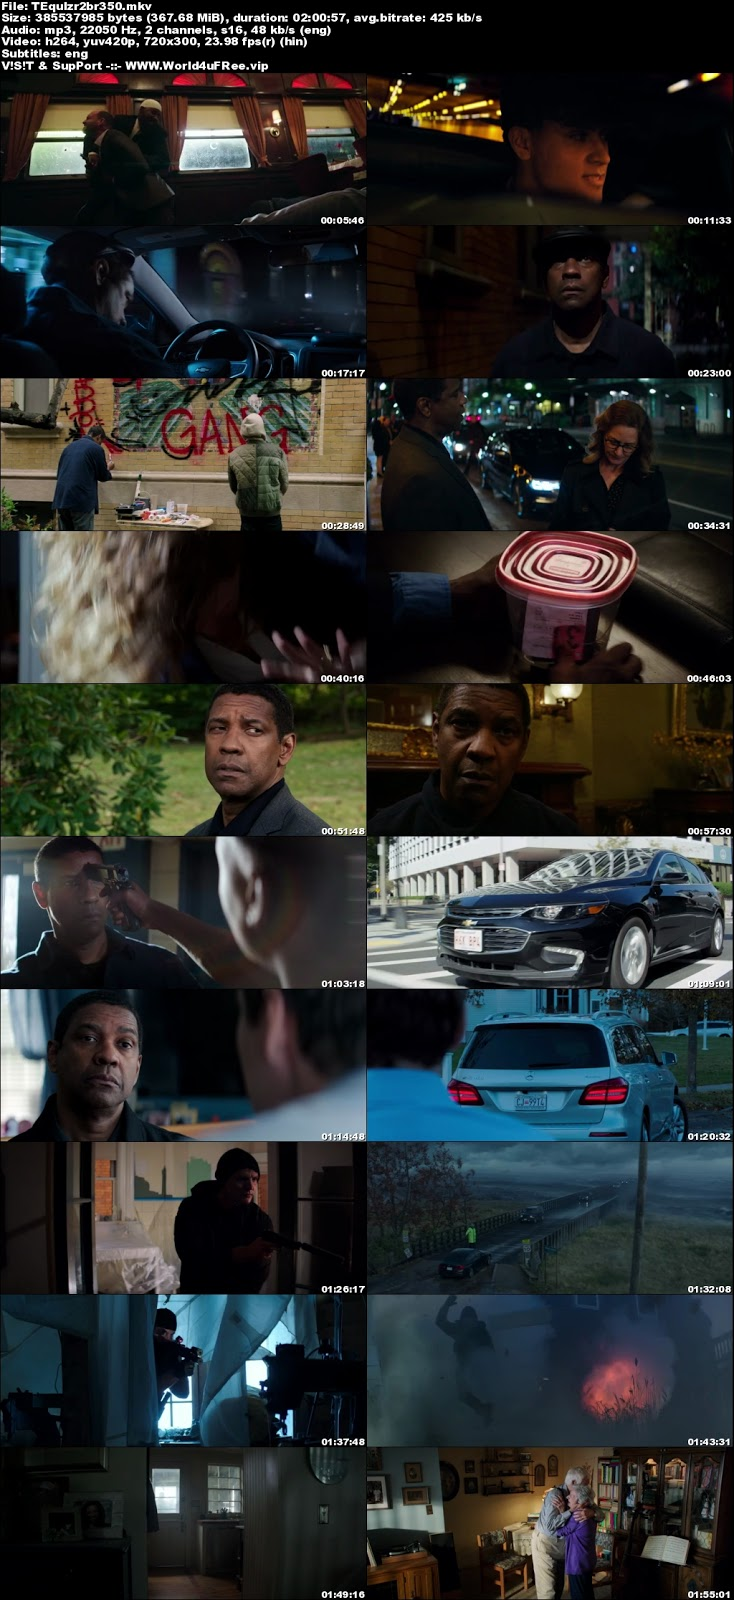 The Equalizer 2 2018 Eng BRRip 480p 350Mb ESub x264 world4ufree.com.co hollywood movie The Equalizer 2 2018 english movie 720p BRRip blueray hdrip webrip The Equalizer 2 2018 web-dl 720p free download or watch online at world4ufree.com.co